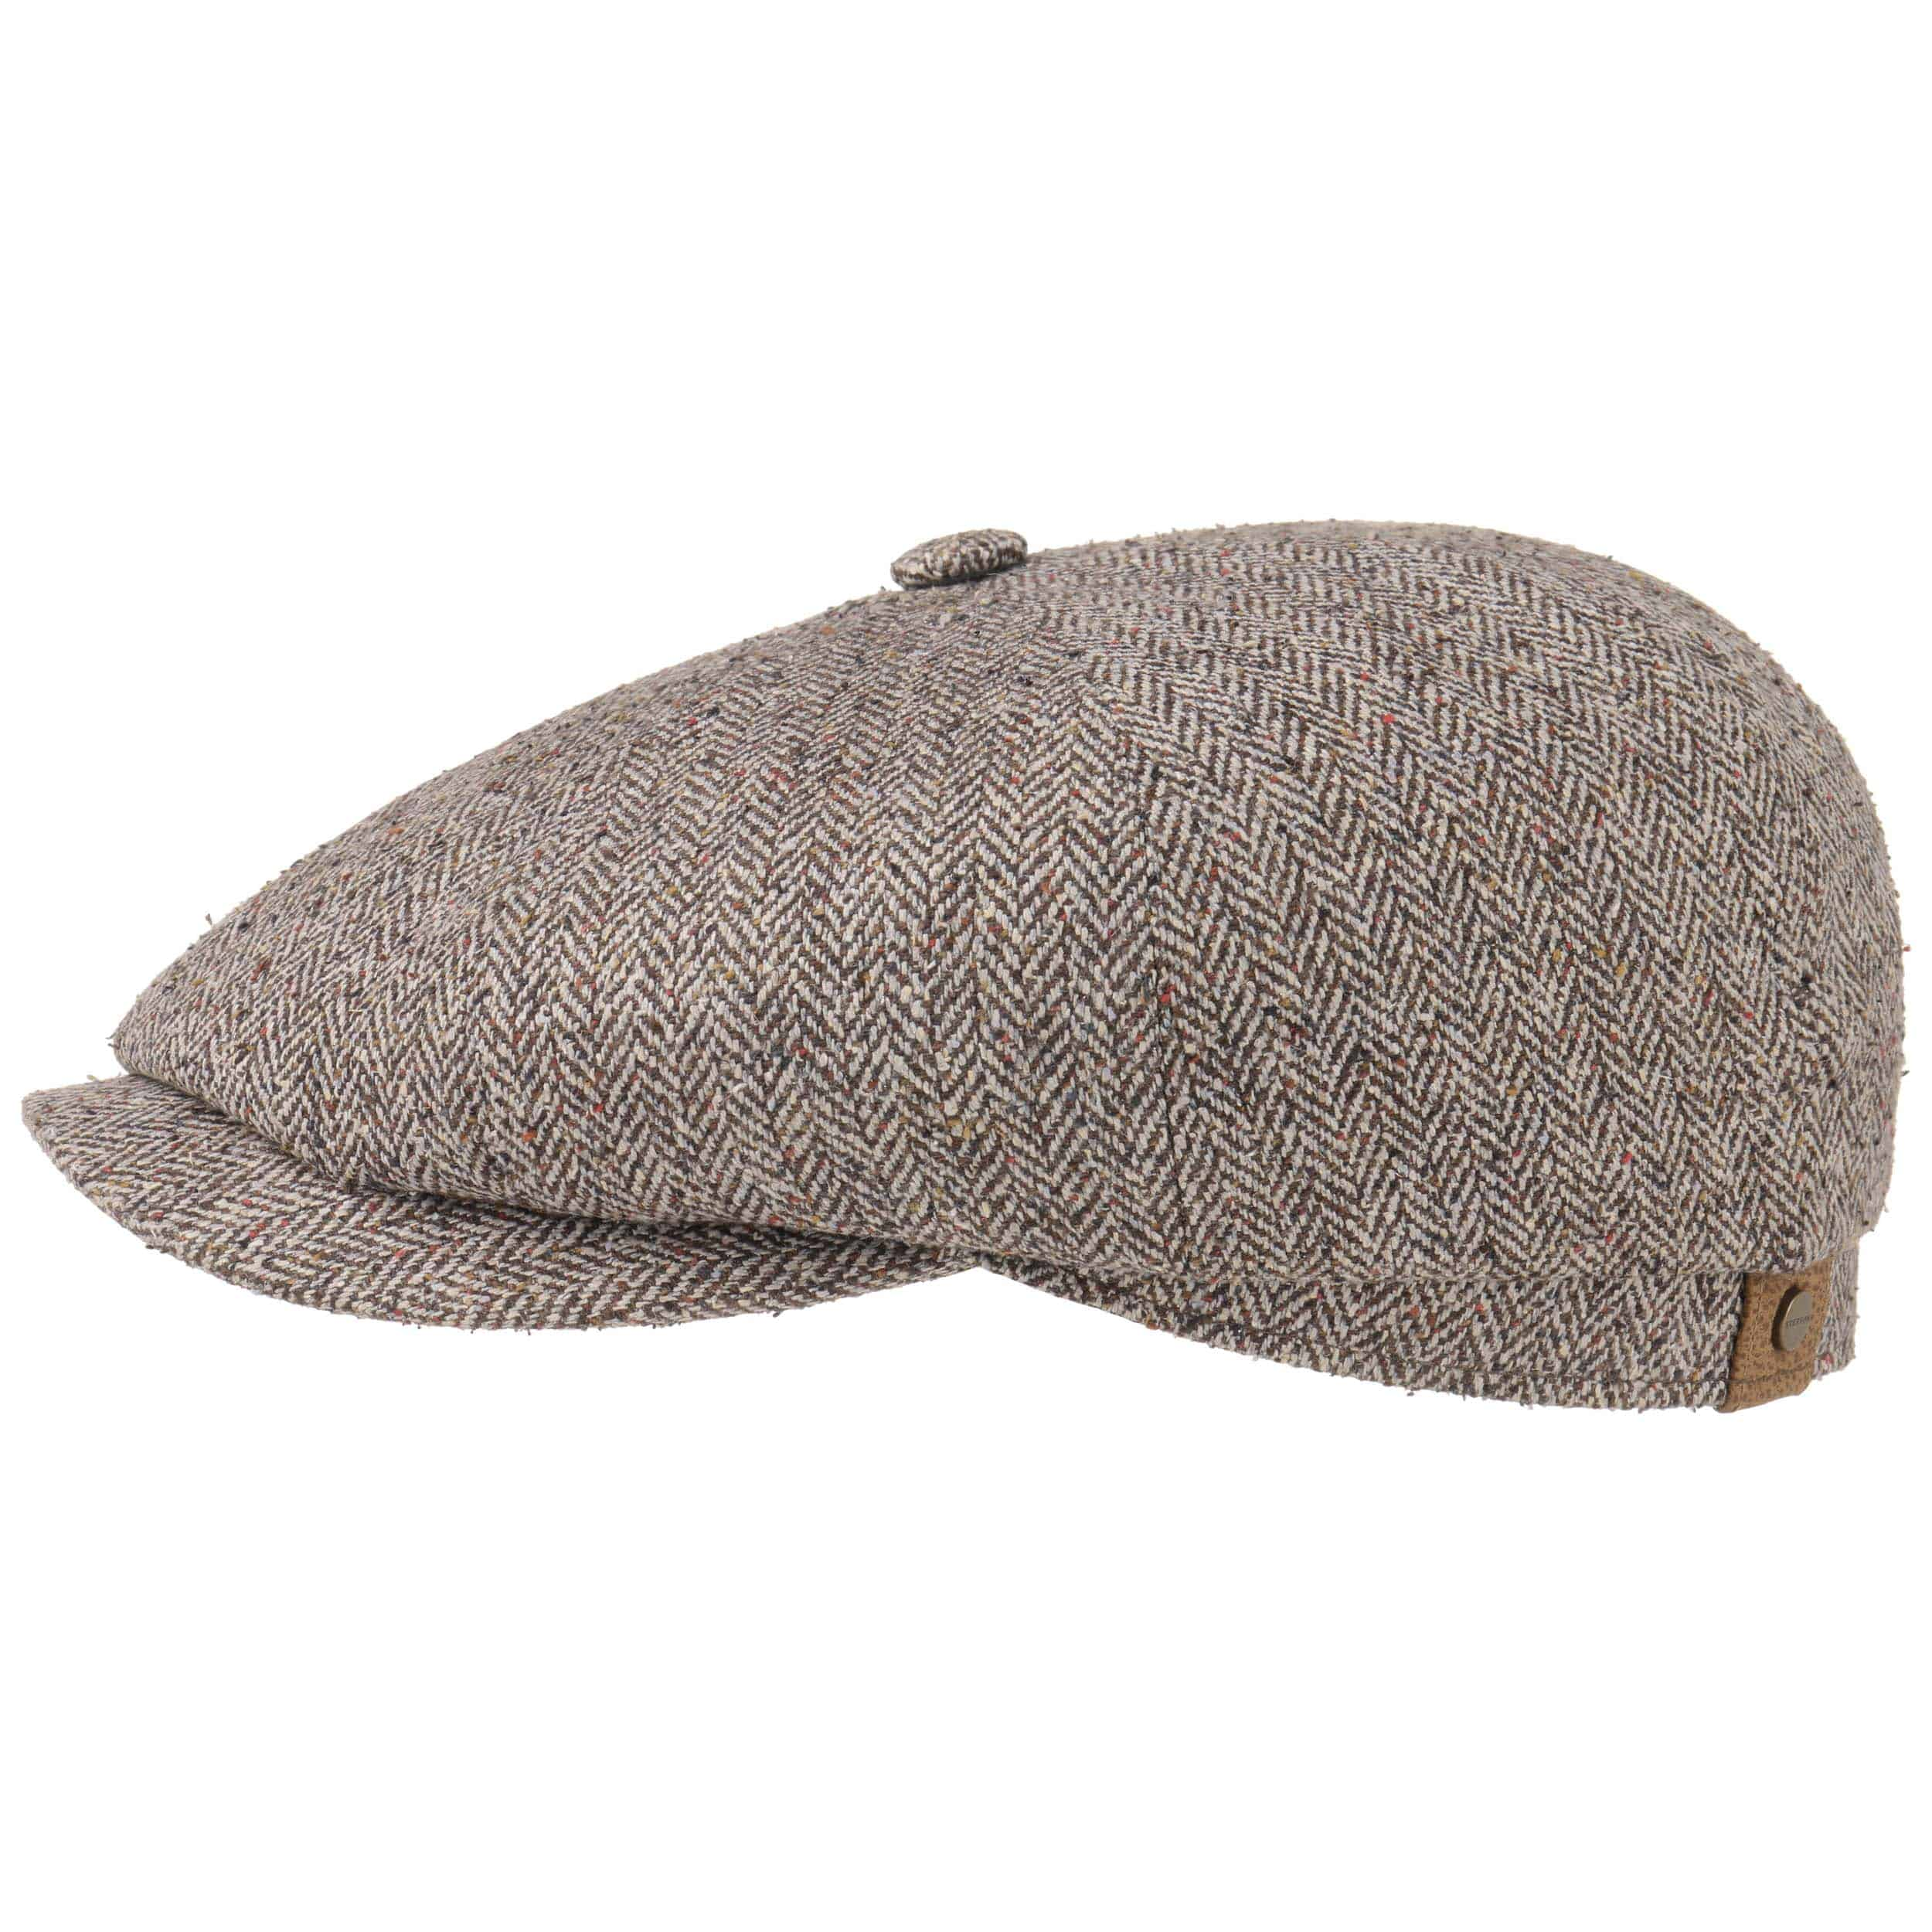 new images of newest collection uk store Hatteras Silk Flat Cap by Stetson